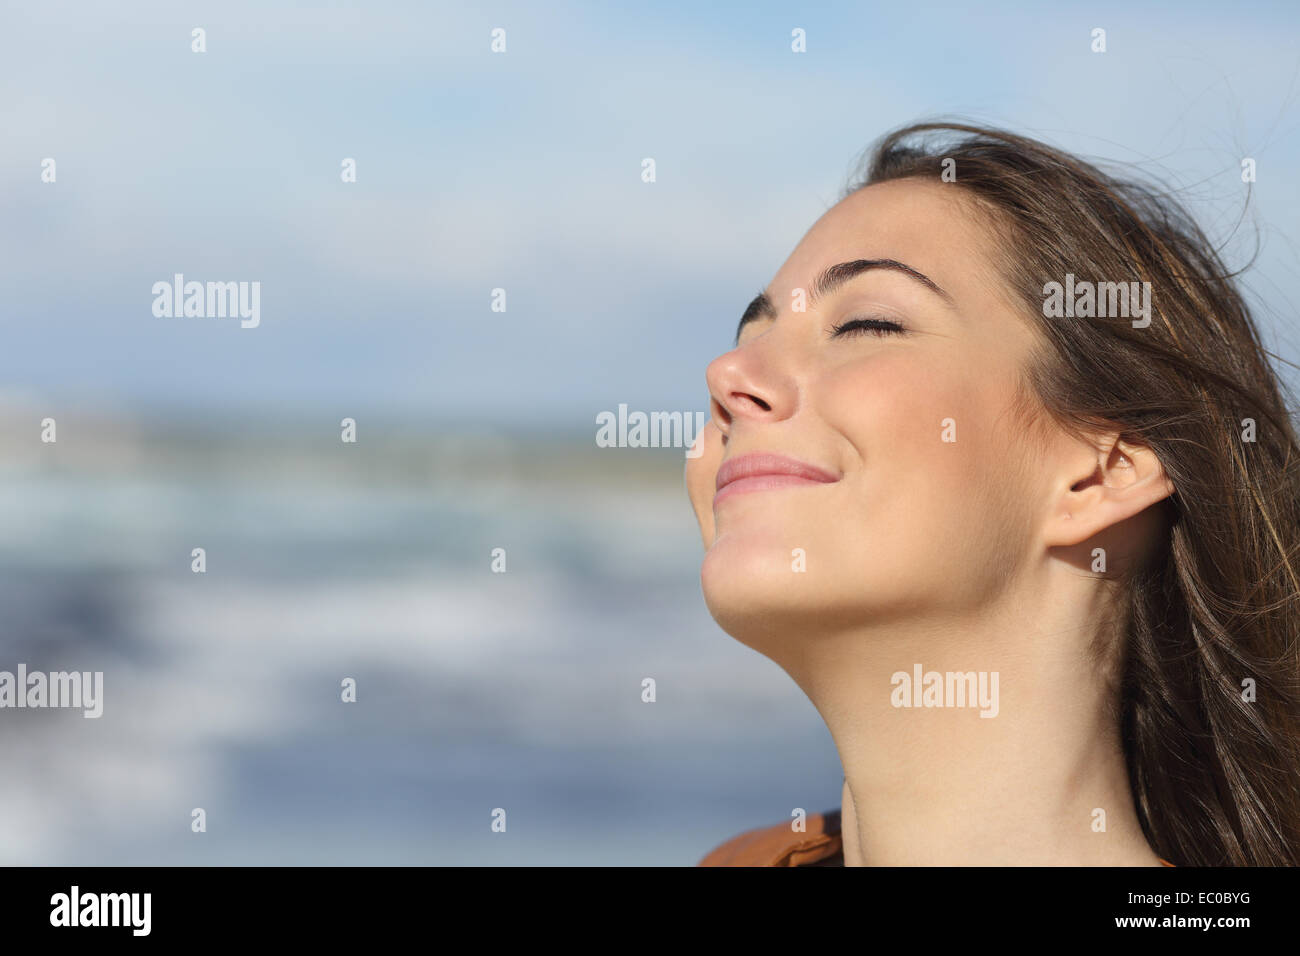 Closeup portrait of a relaxed woman breathing fresh air on the beach - Stock Image